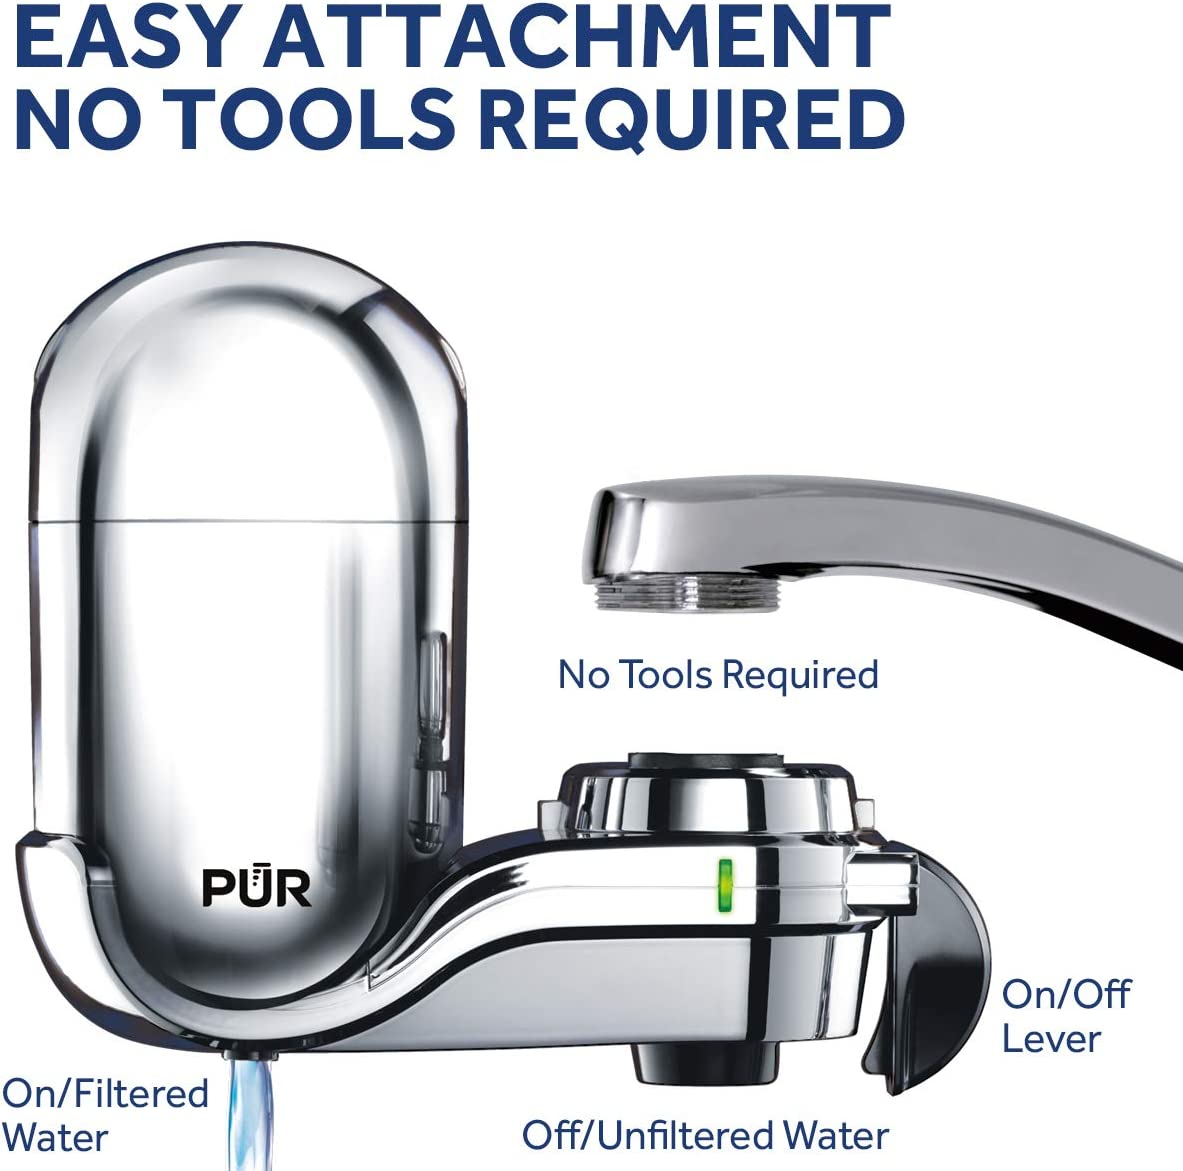 PUR - FM-3700 Faucet Mount Water Filter - easy to install